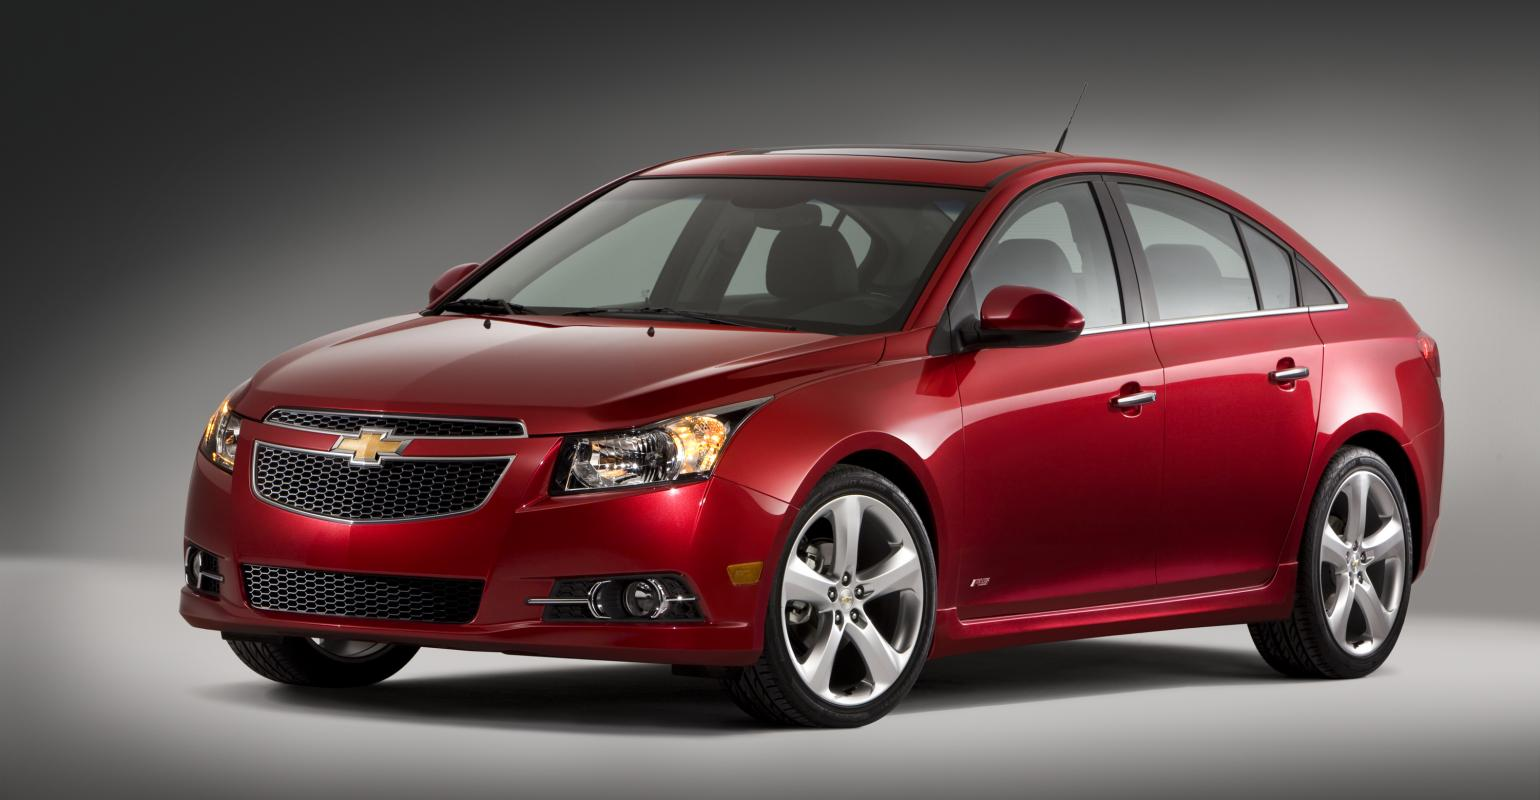 Chevy Cruze Could Dictate Direction Of Compact Car Segment In 2012 Wardsauto